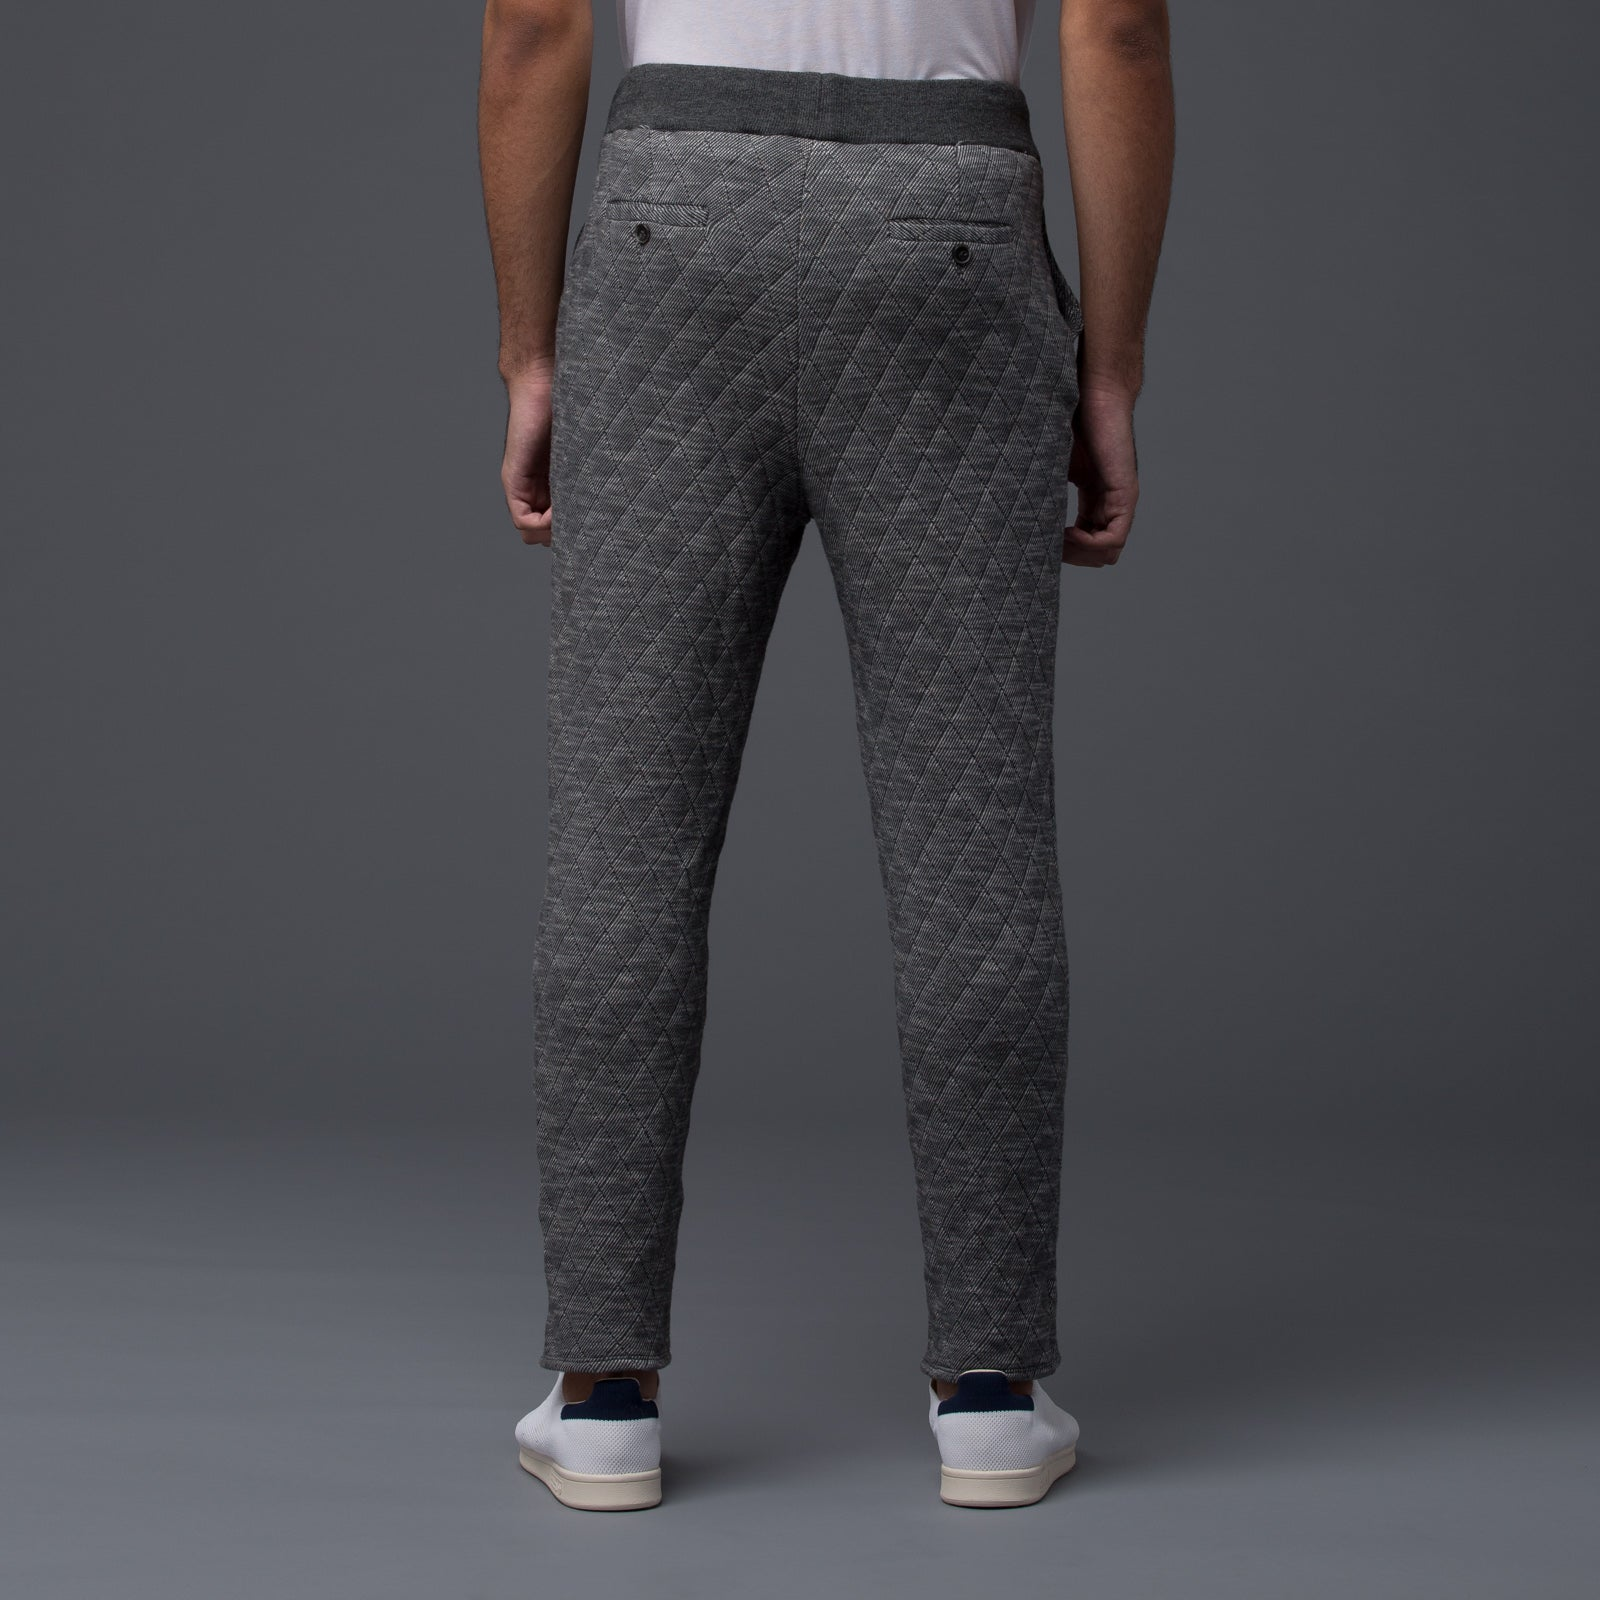 Krammer and Stoudt Knit Sweatpant